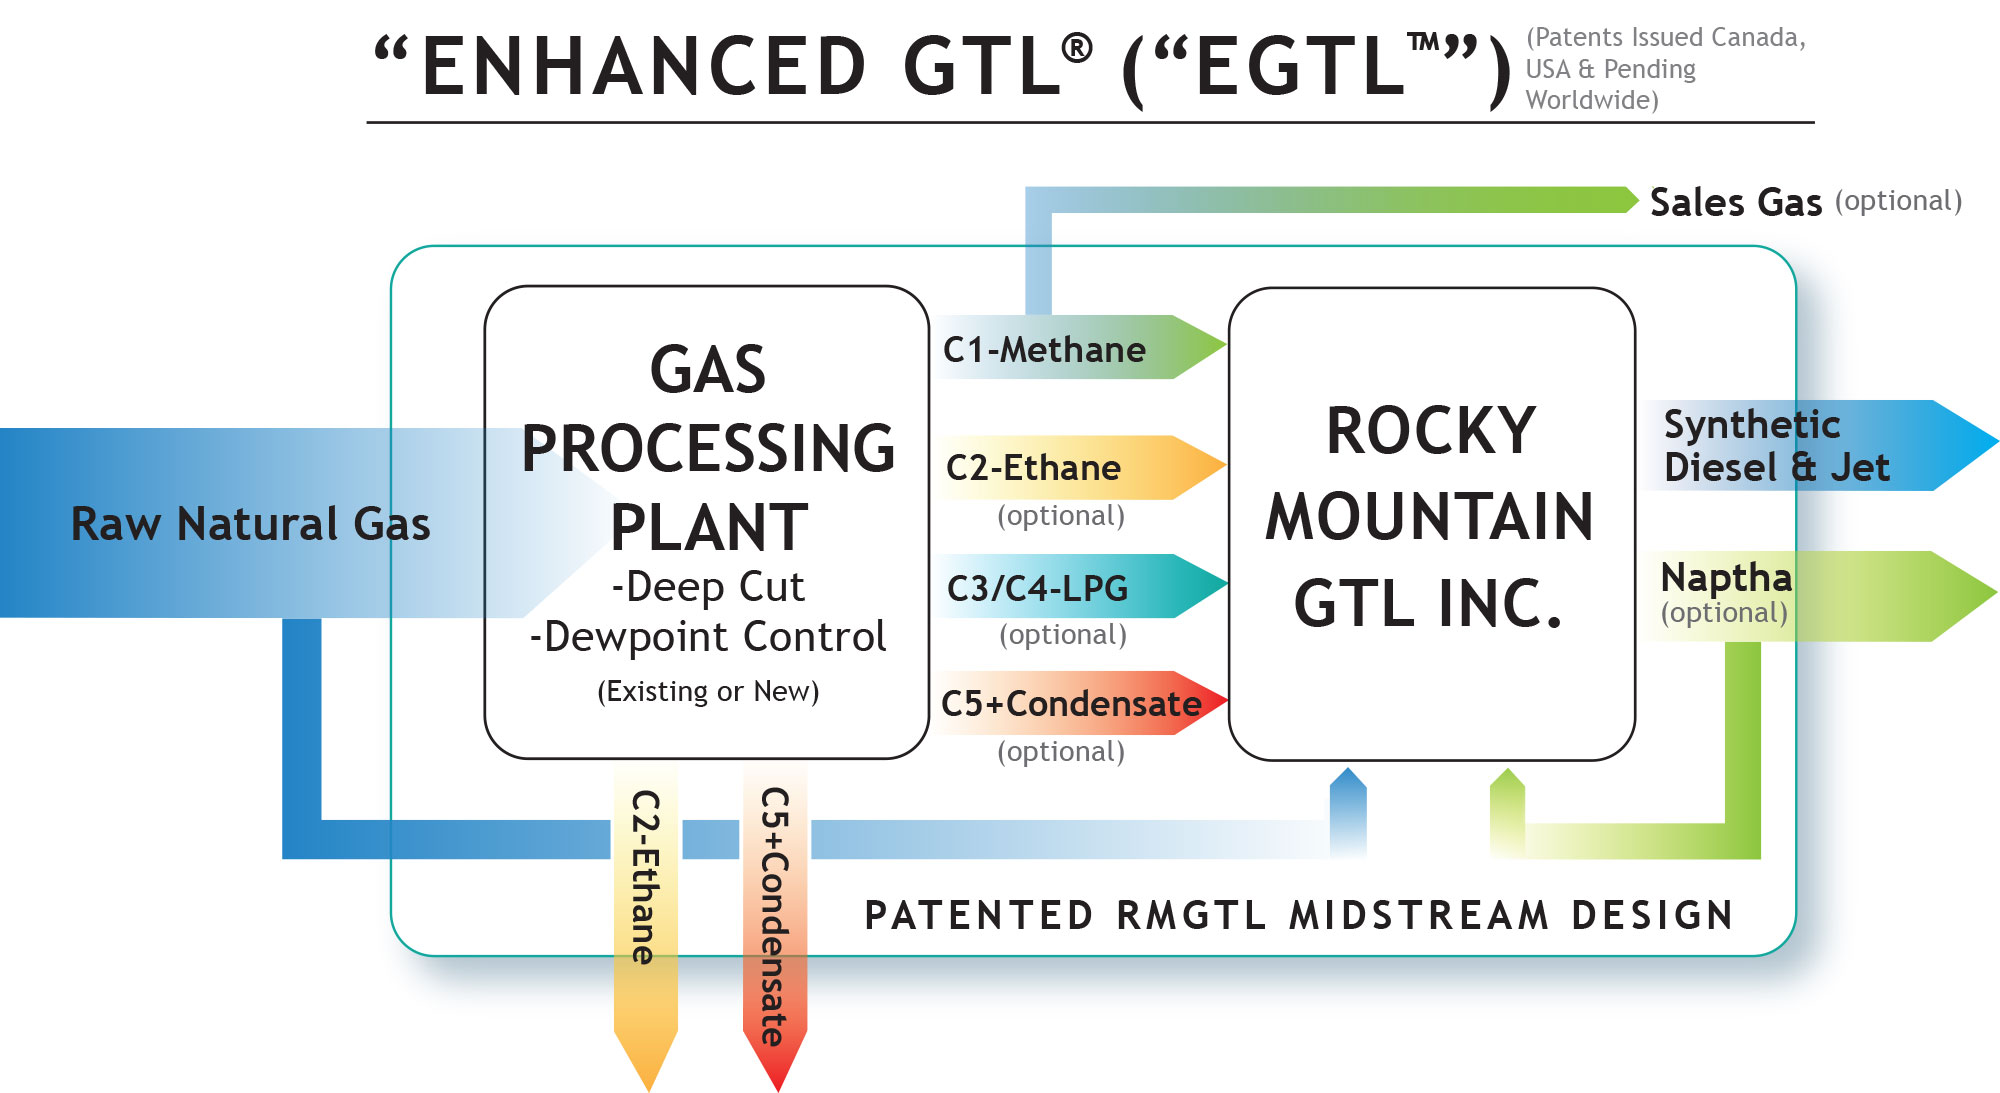 Technology - Rocky Mountain GTL Inc